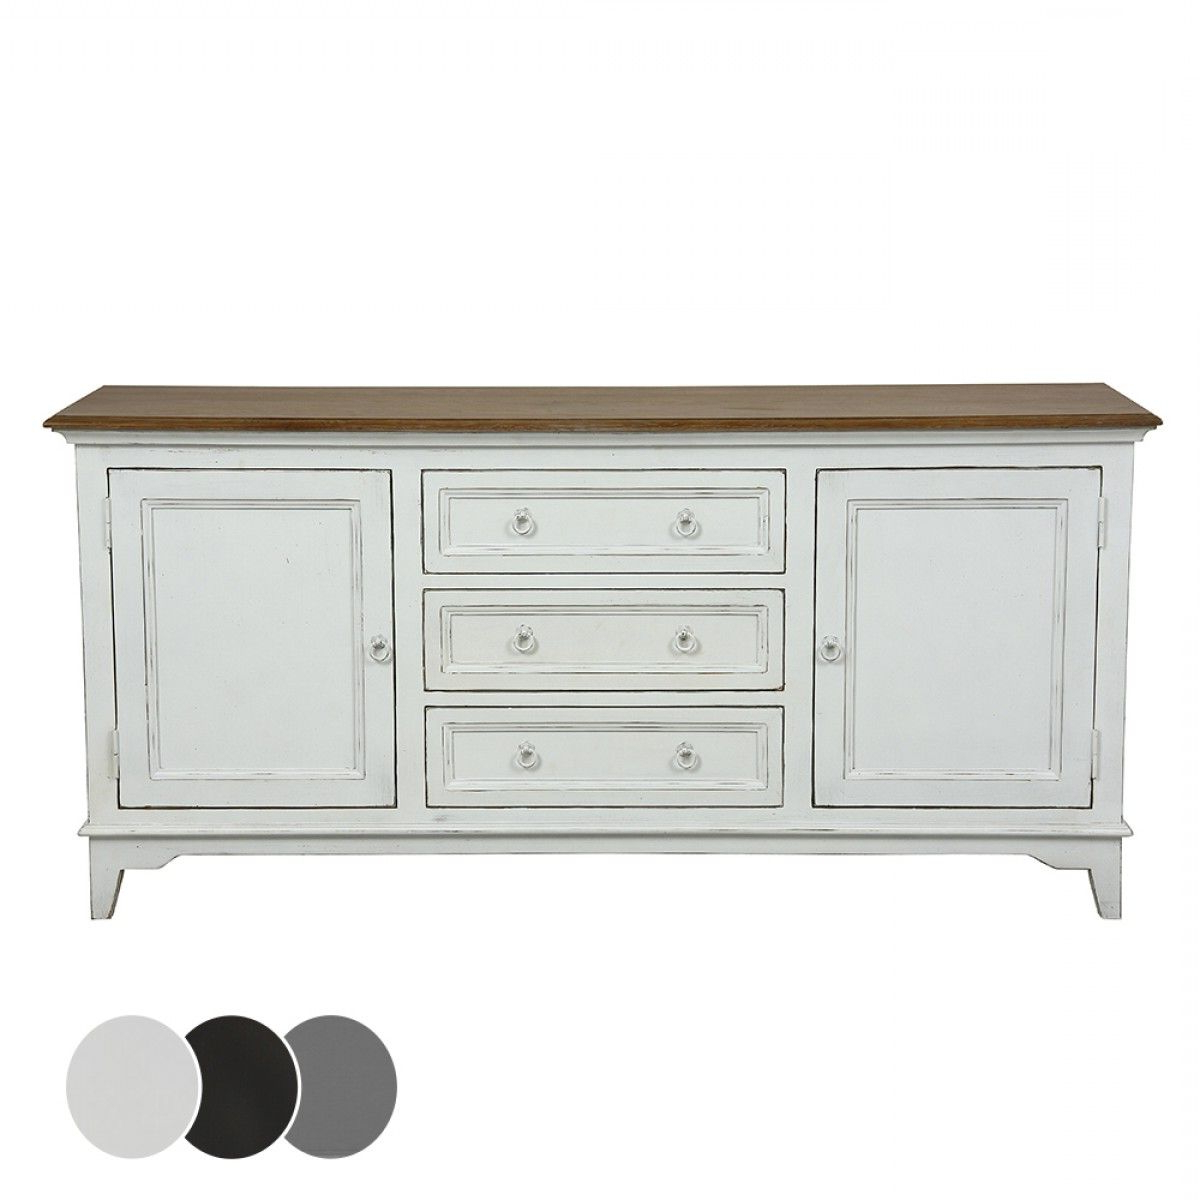 4 Door 3 Drawer White Wash Sideboards Within Most Up To Date Esquisse 2 Door 3 Drawer Sideboard – Black – Buffets & Sideboards (Gallery 6 of 20)